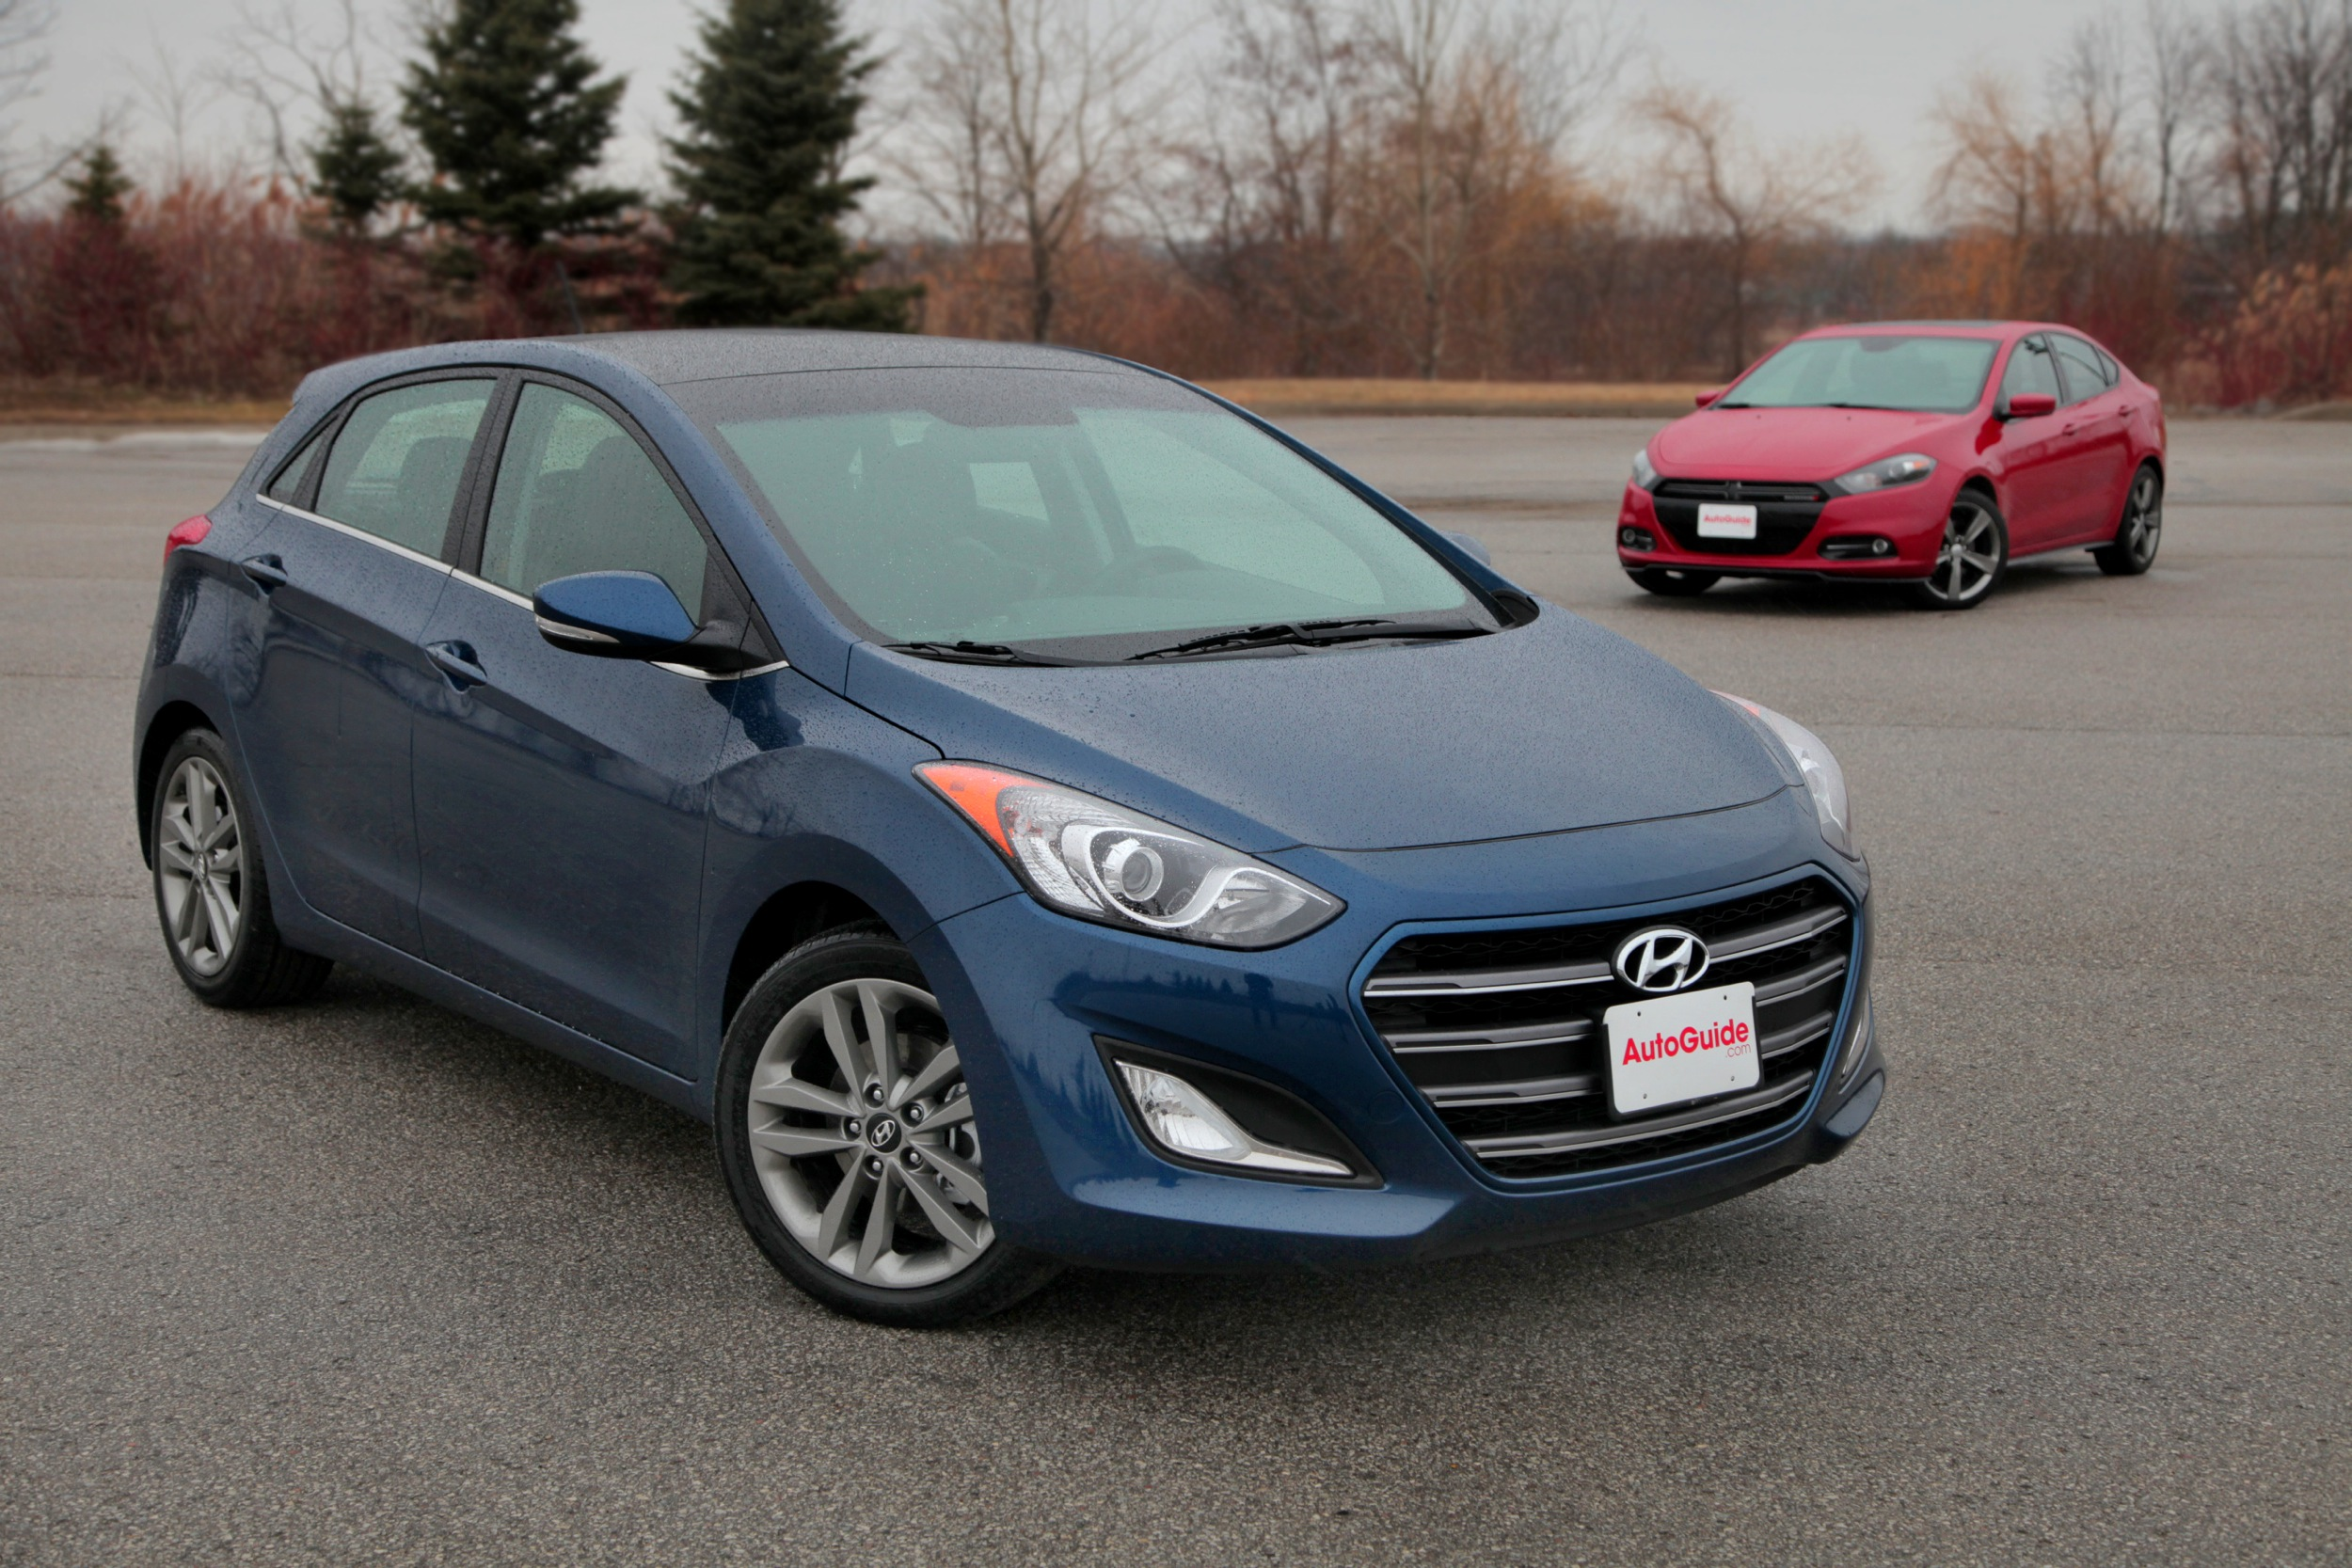 us car elantra news india announced hyundai